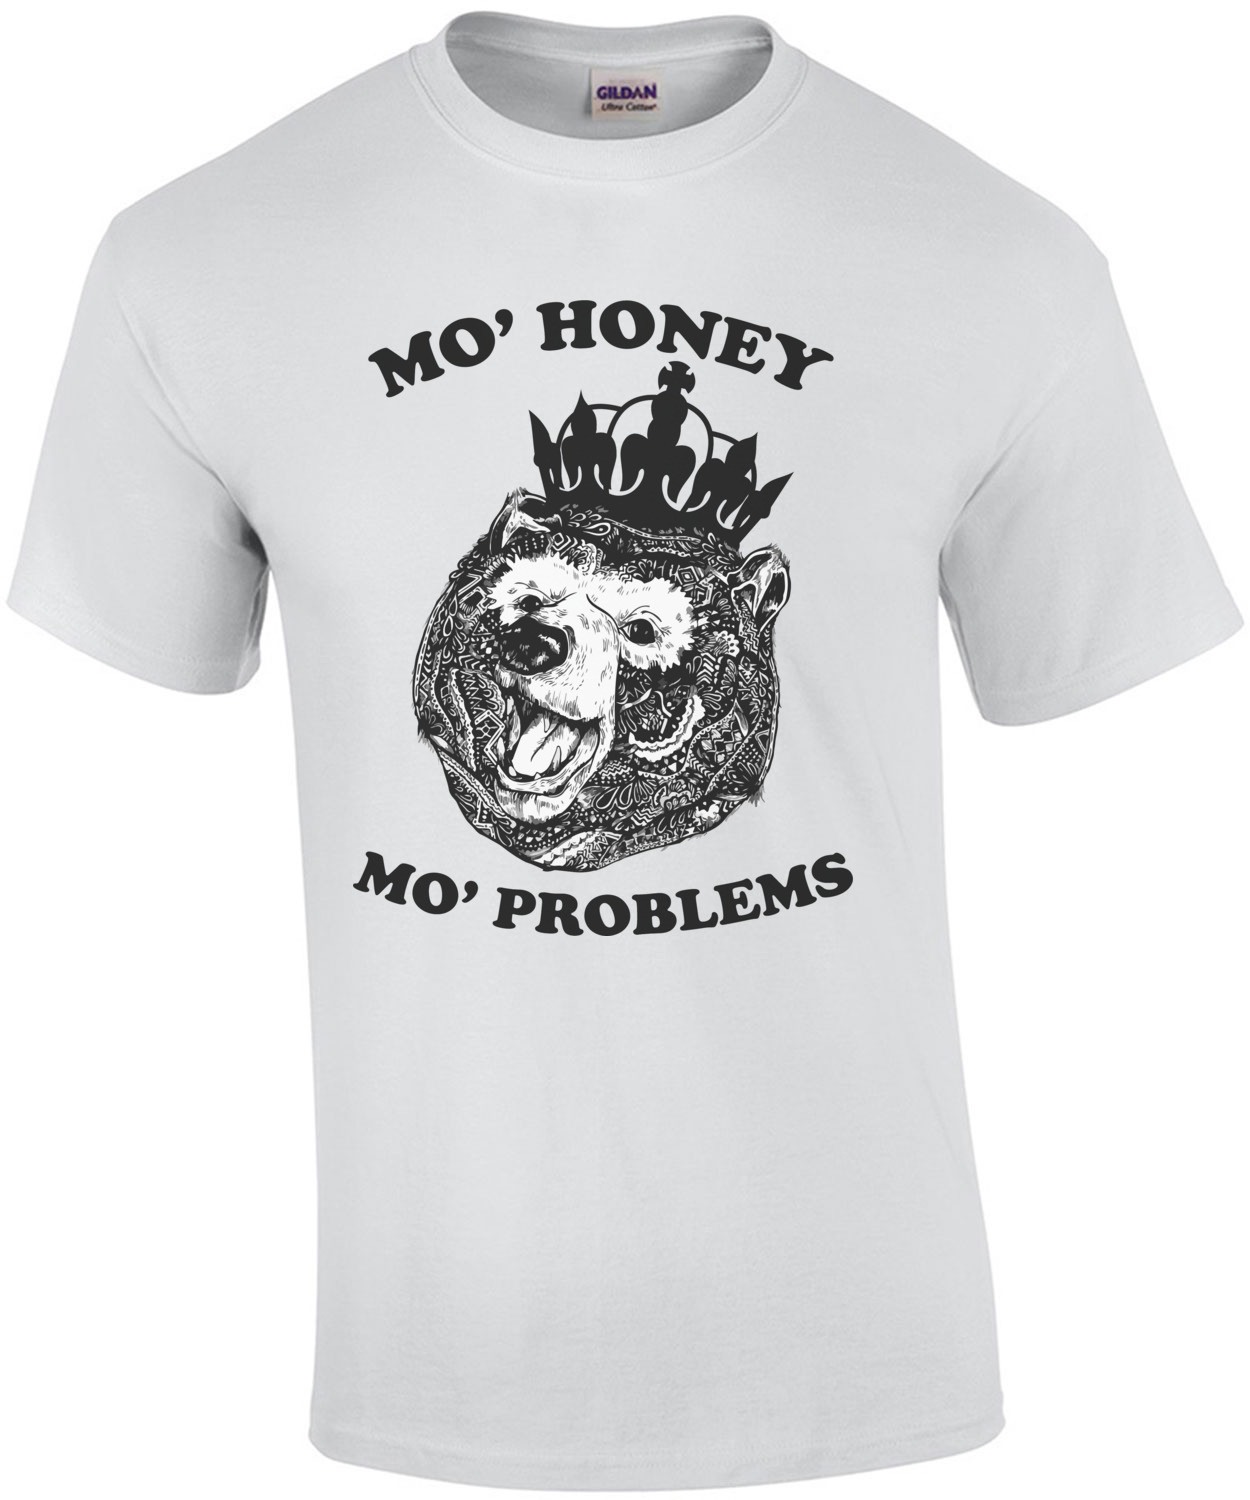 Mo' Honey Mo' Problems T-Shirt